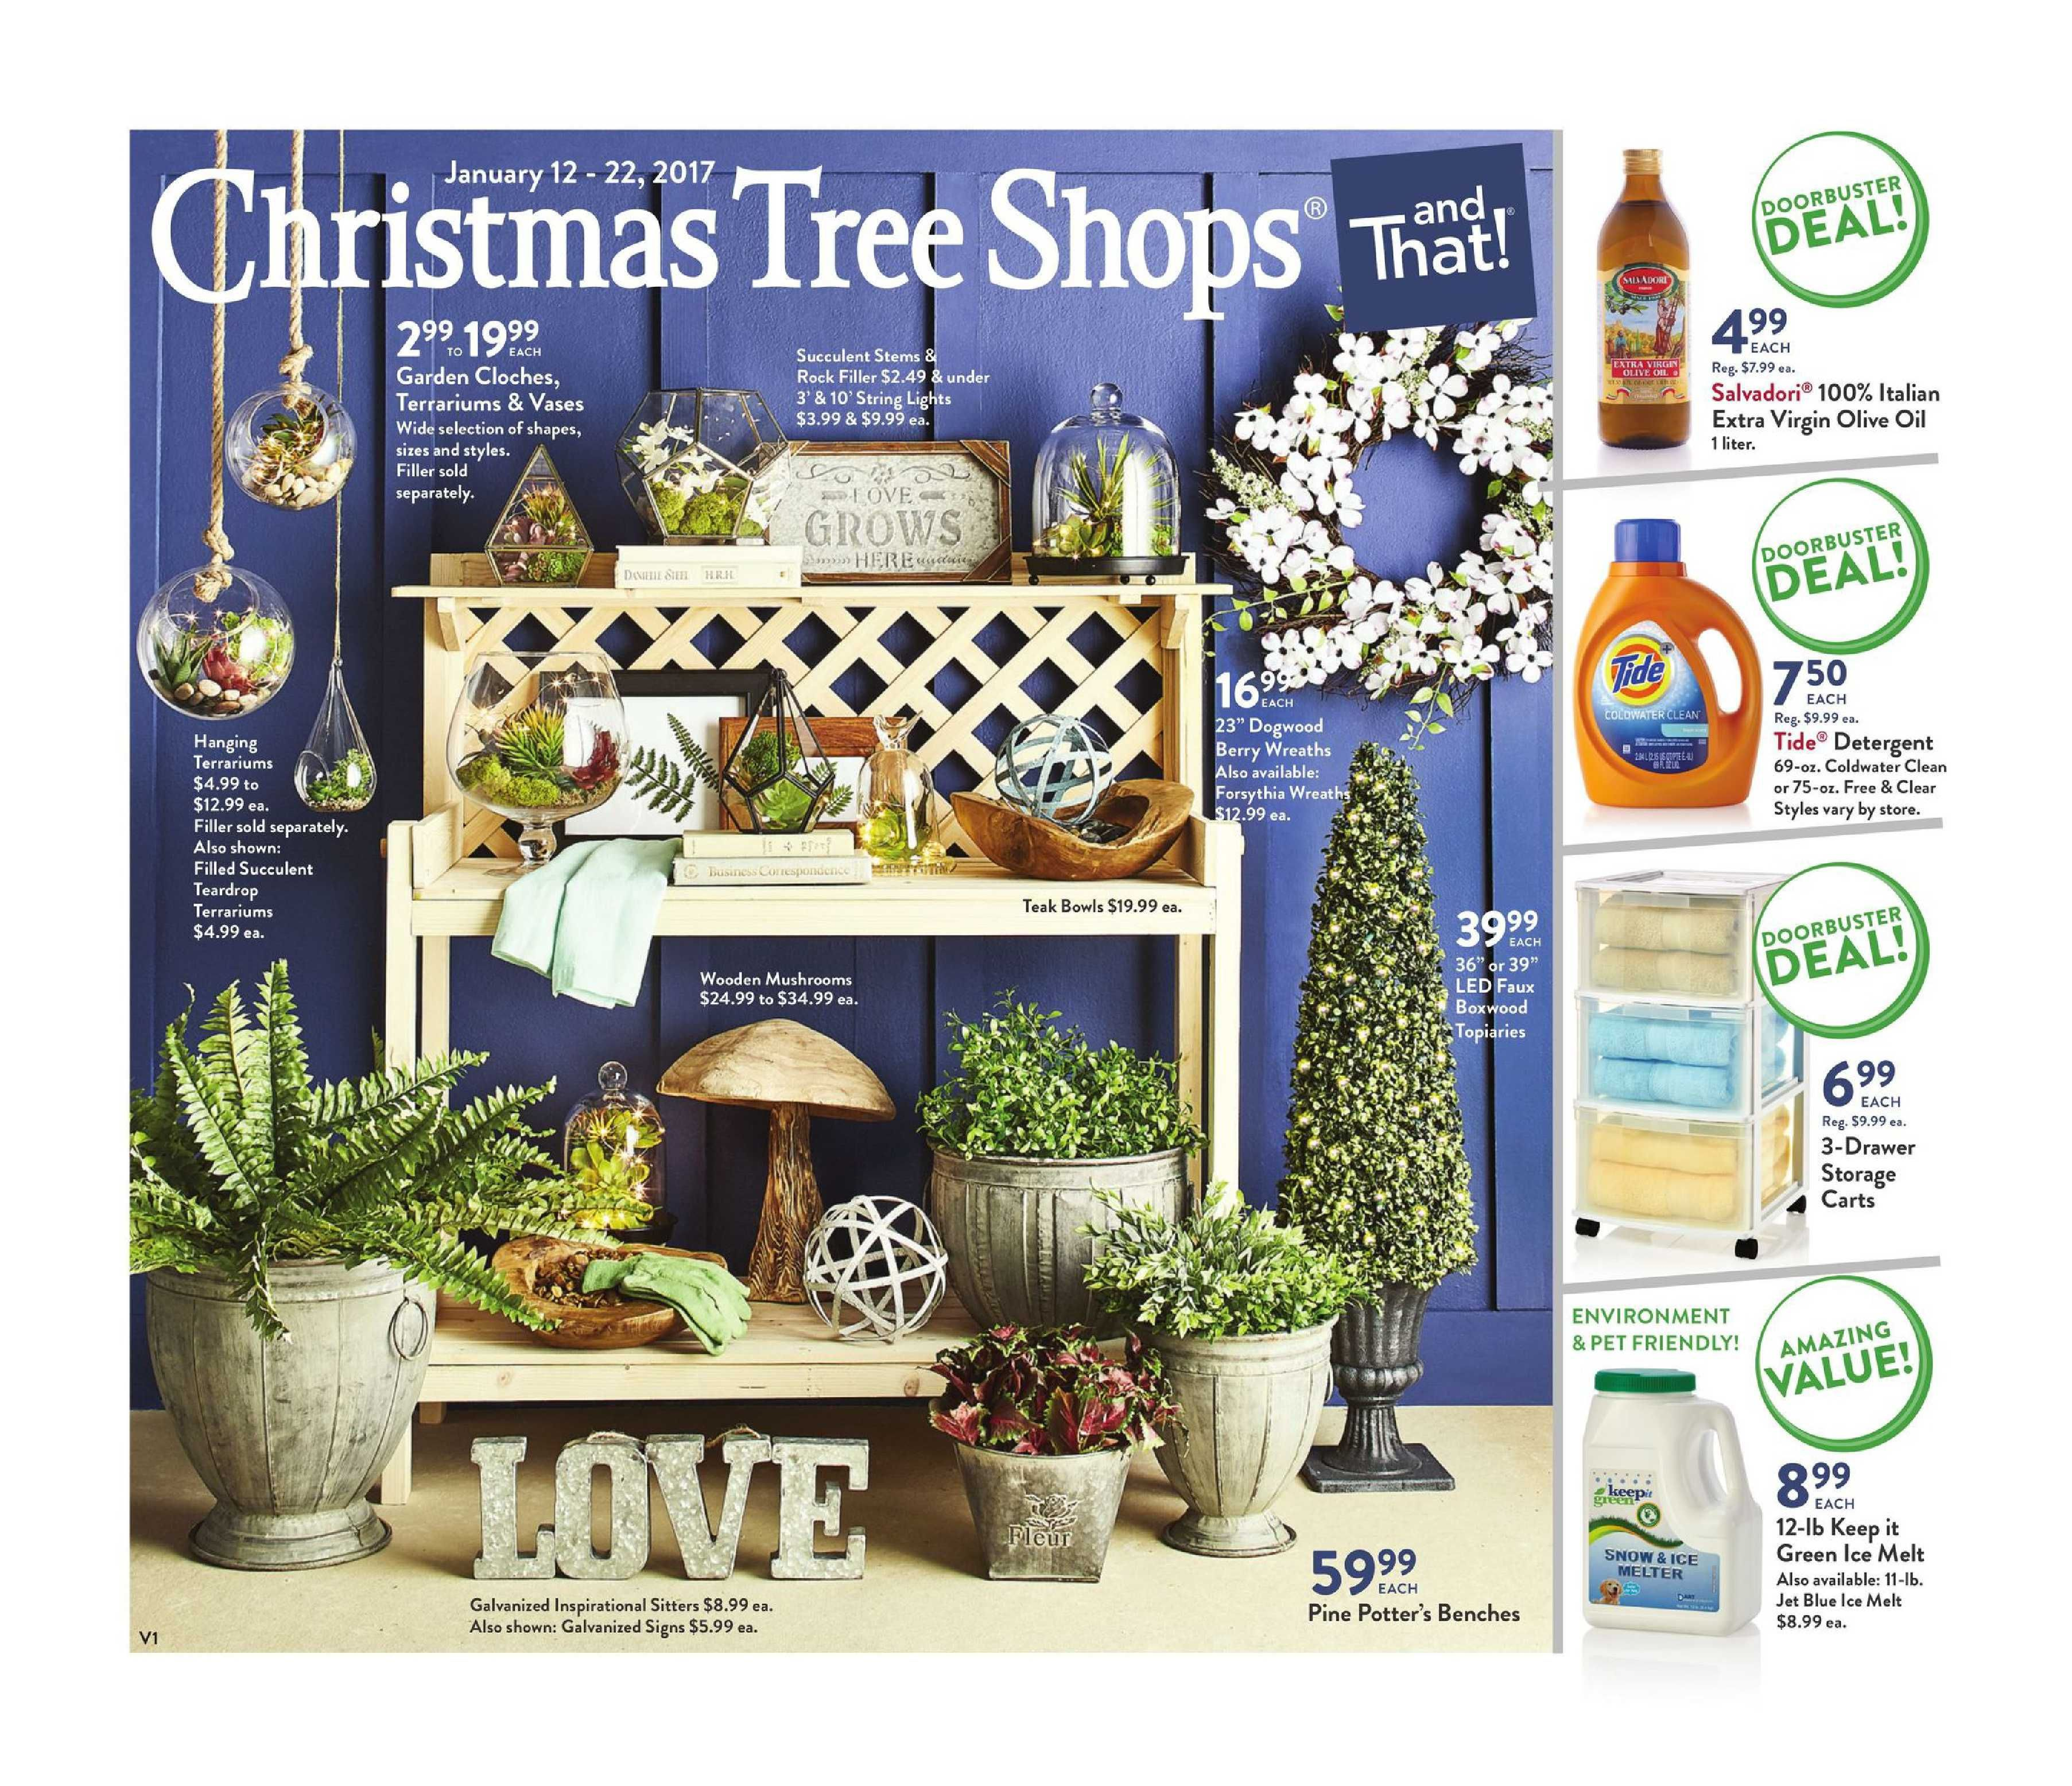 Christmas Tree Shops Circular Flyer June 21   July Do You Know Whatu0027s In  And Whatu0027s Hot In The Christmas Tree Shops For This Week?